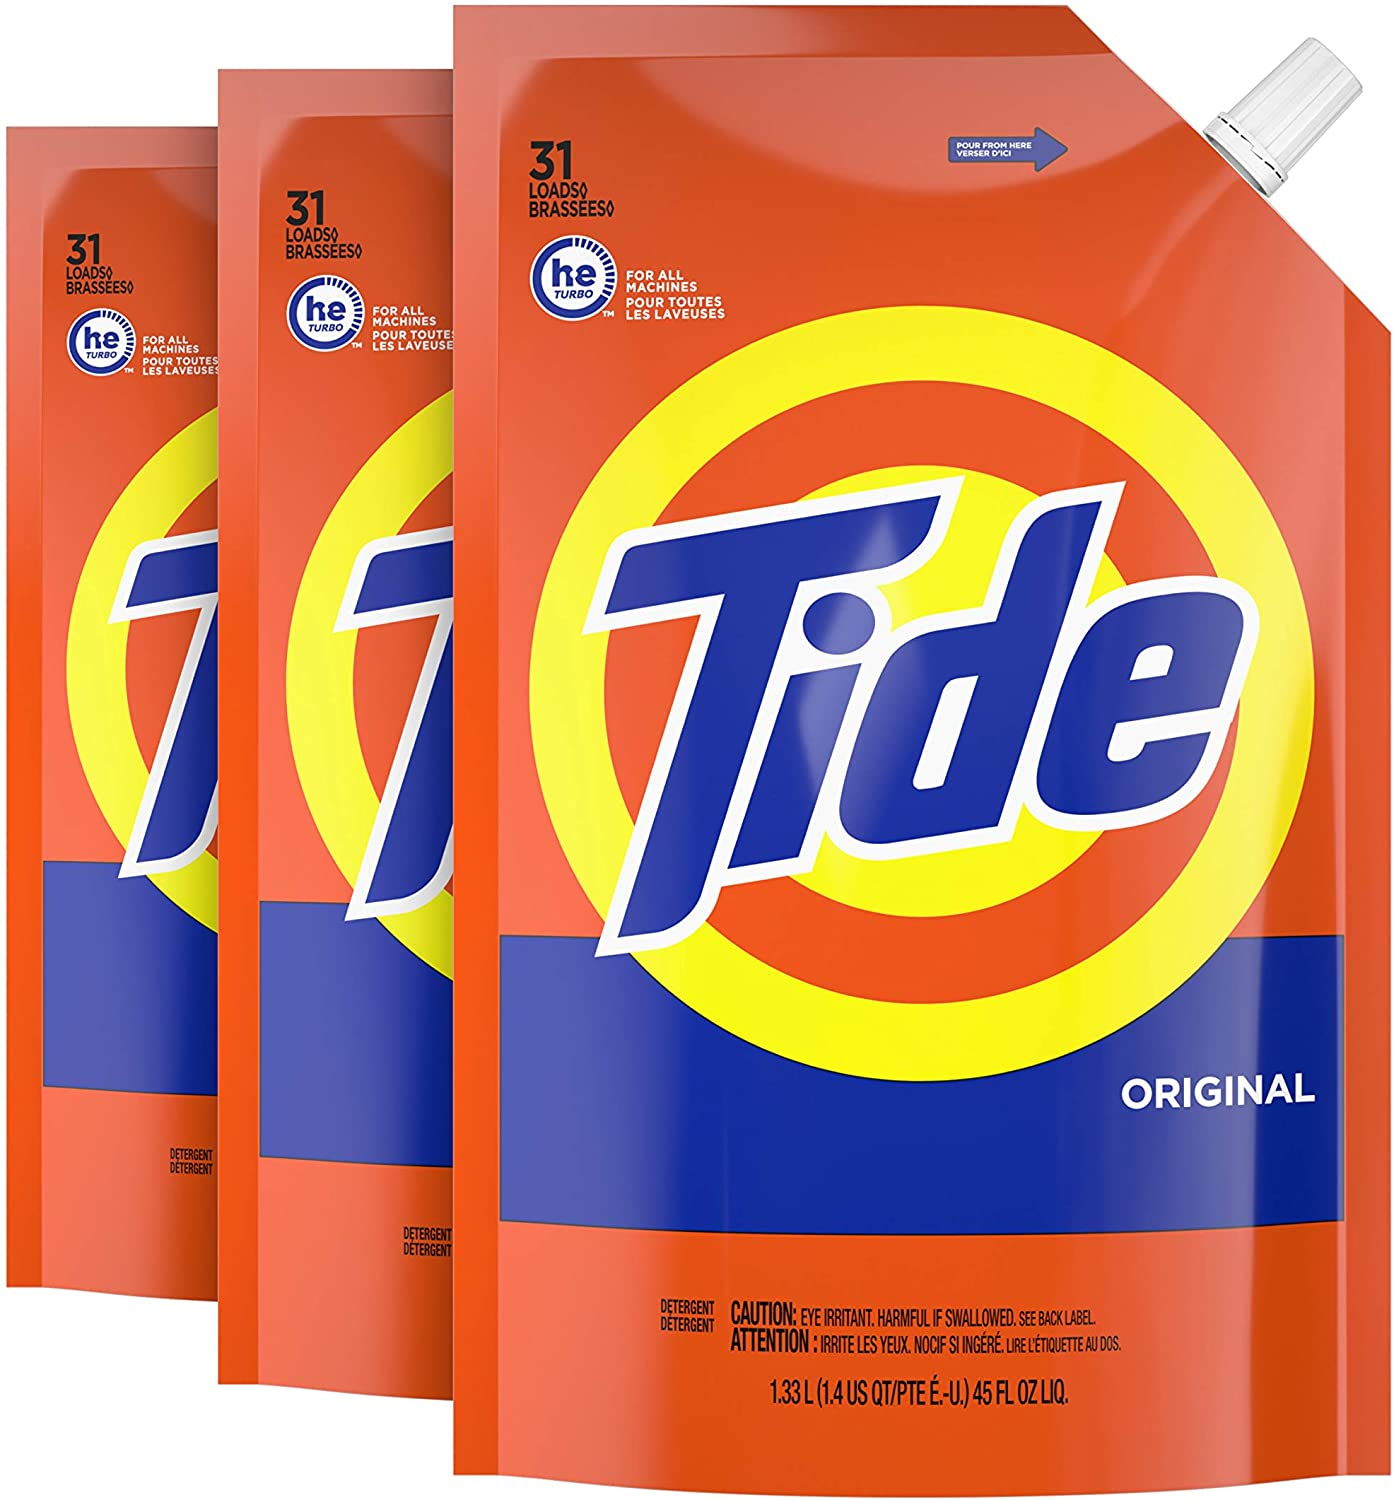 Tide Liquid Laundry Detergent, Original Scent, Pack of 3, 93 total loads